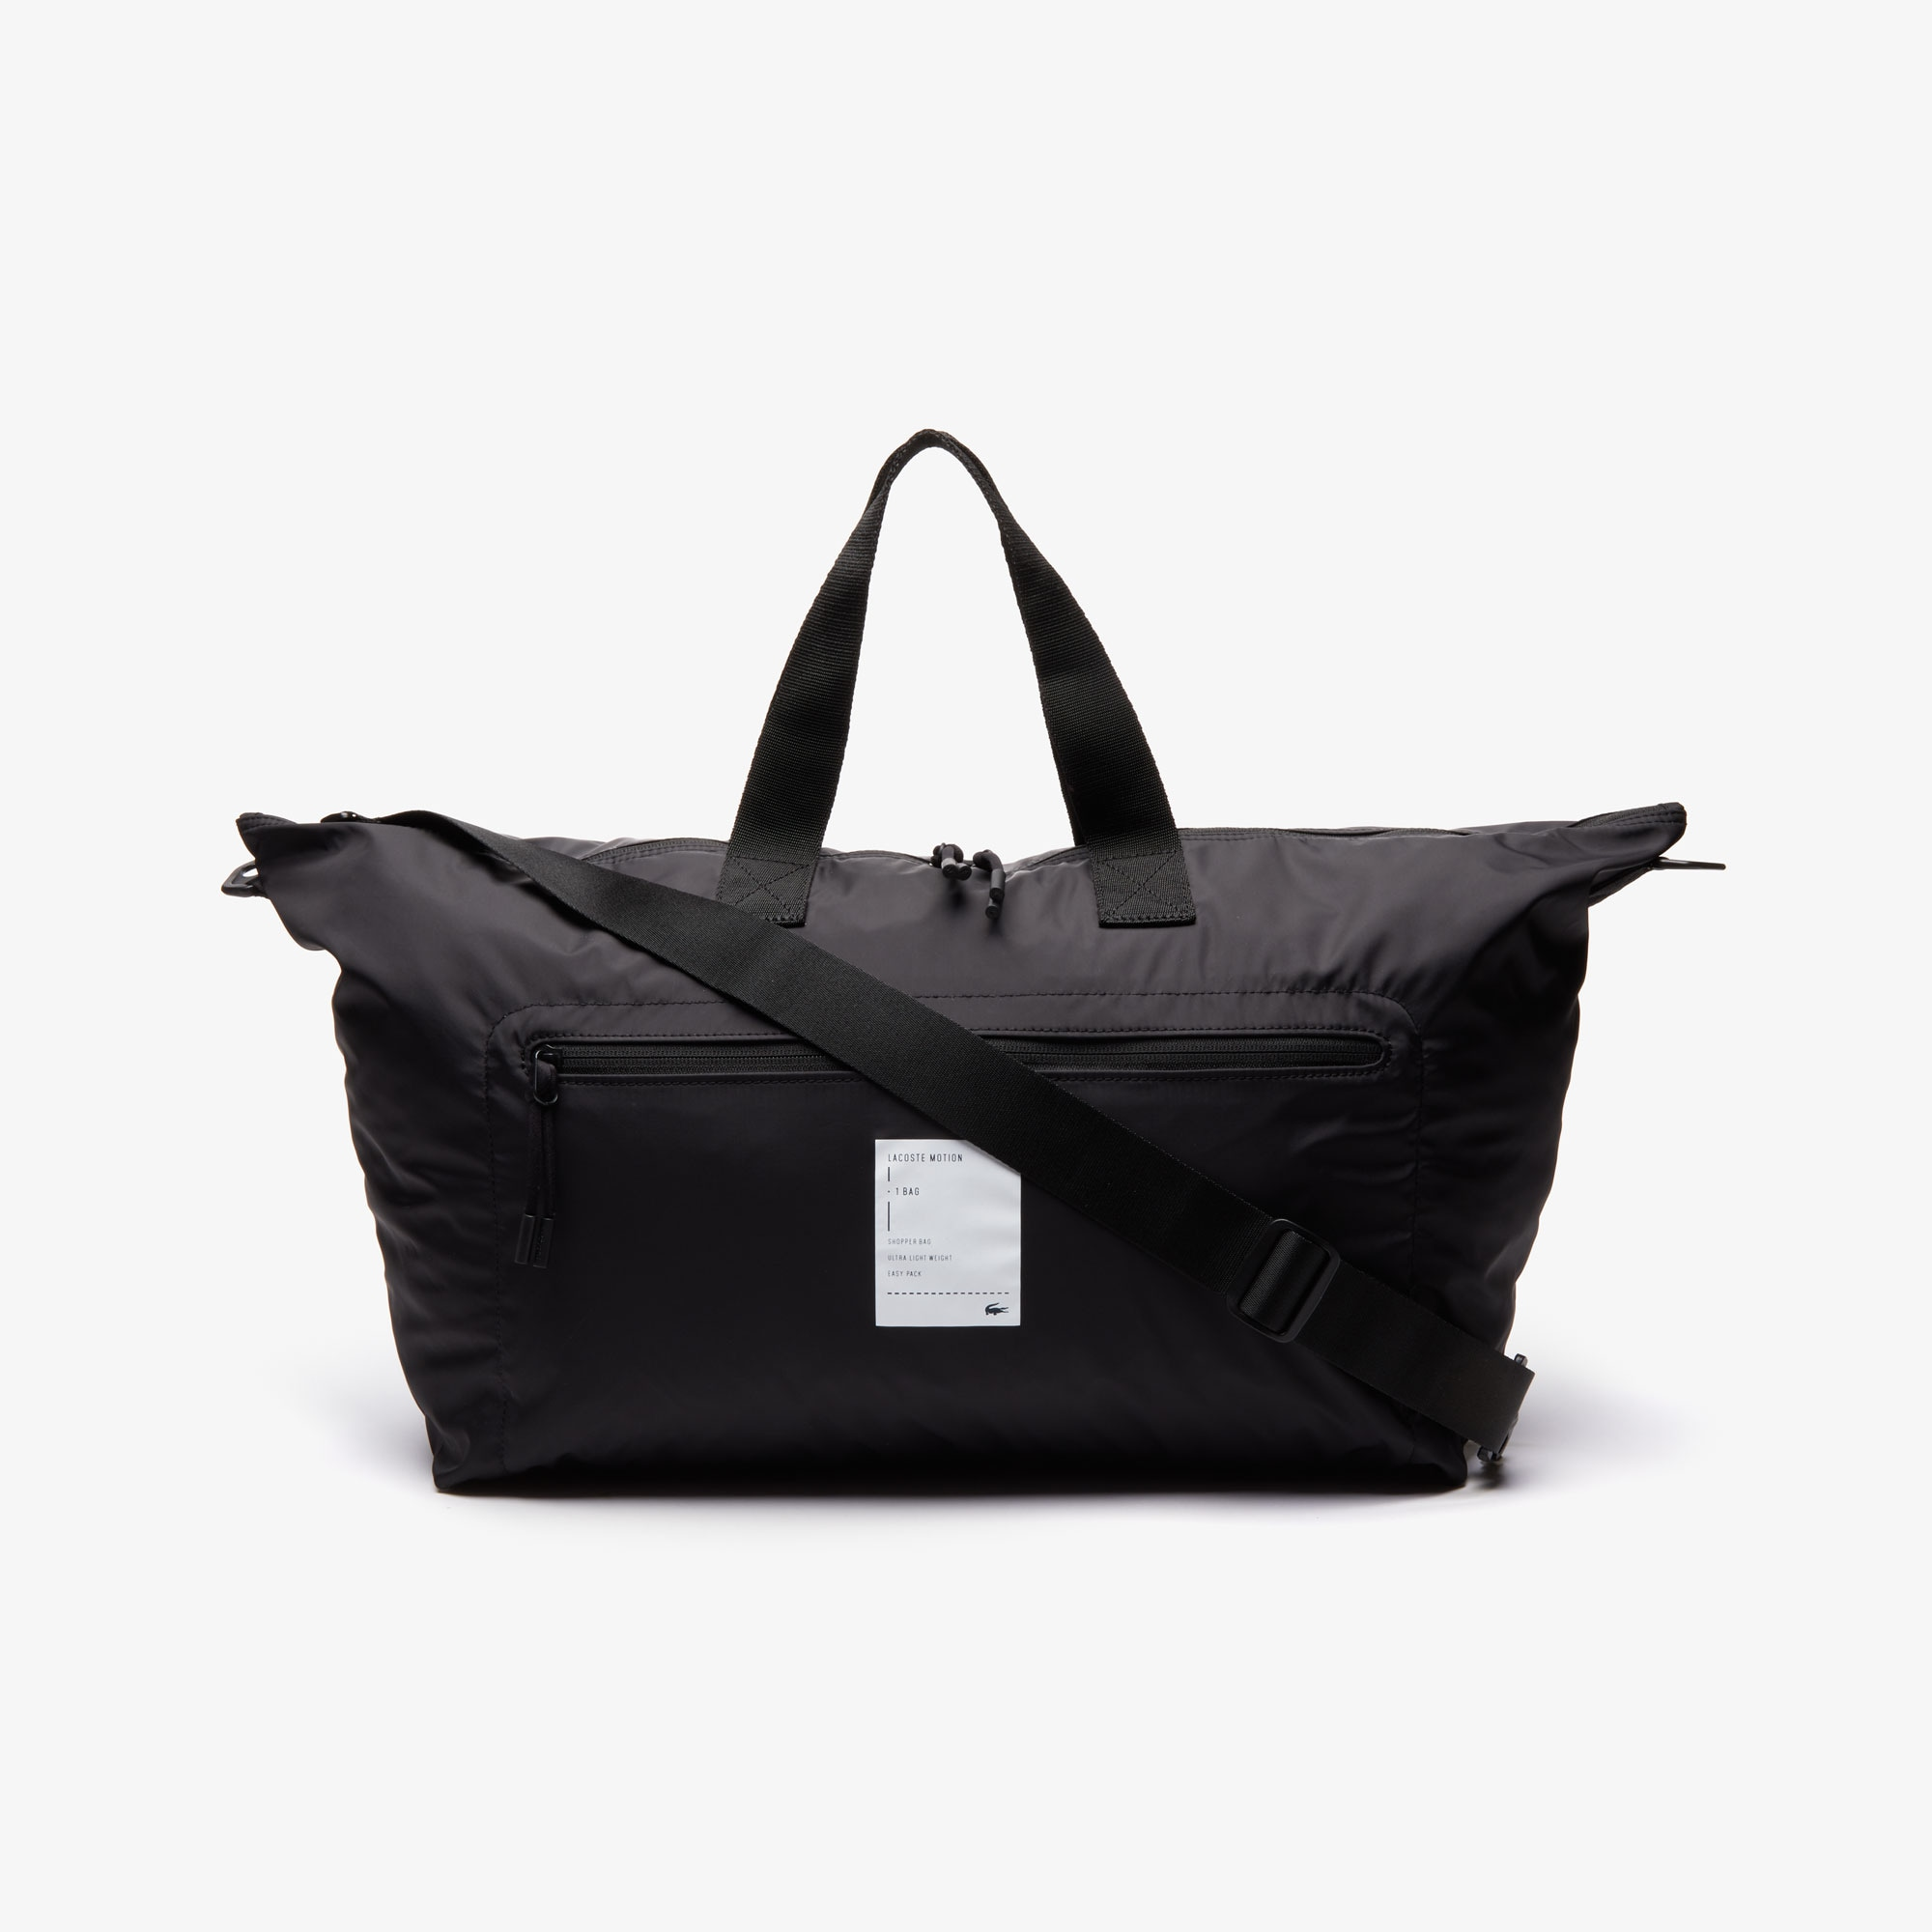 라코스테 모션 토트백 Lacoste Motion Large Collapsible Tote Bag,BLACK